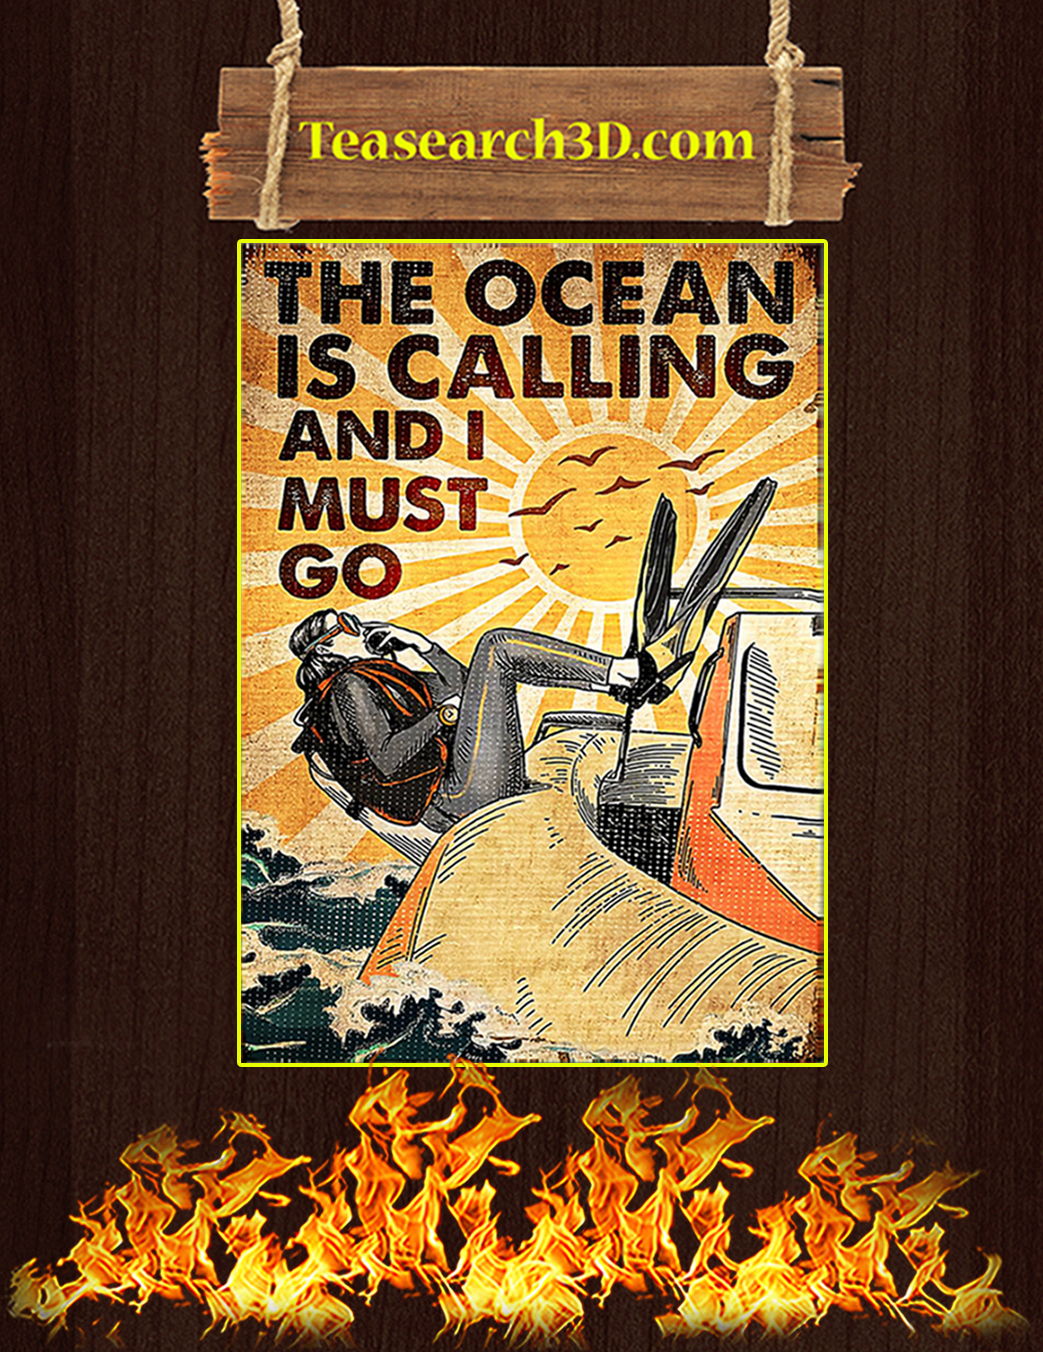 Scuba The ocean is calling and I must go poster A1